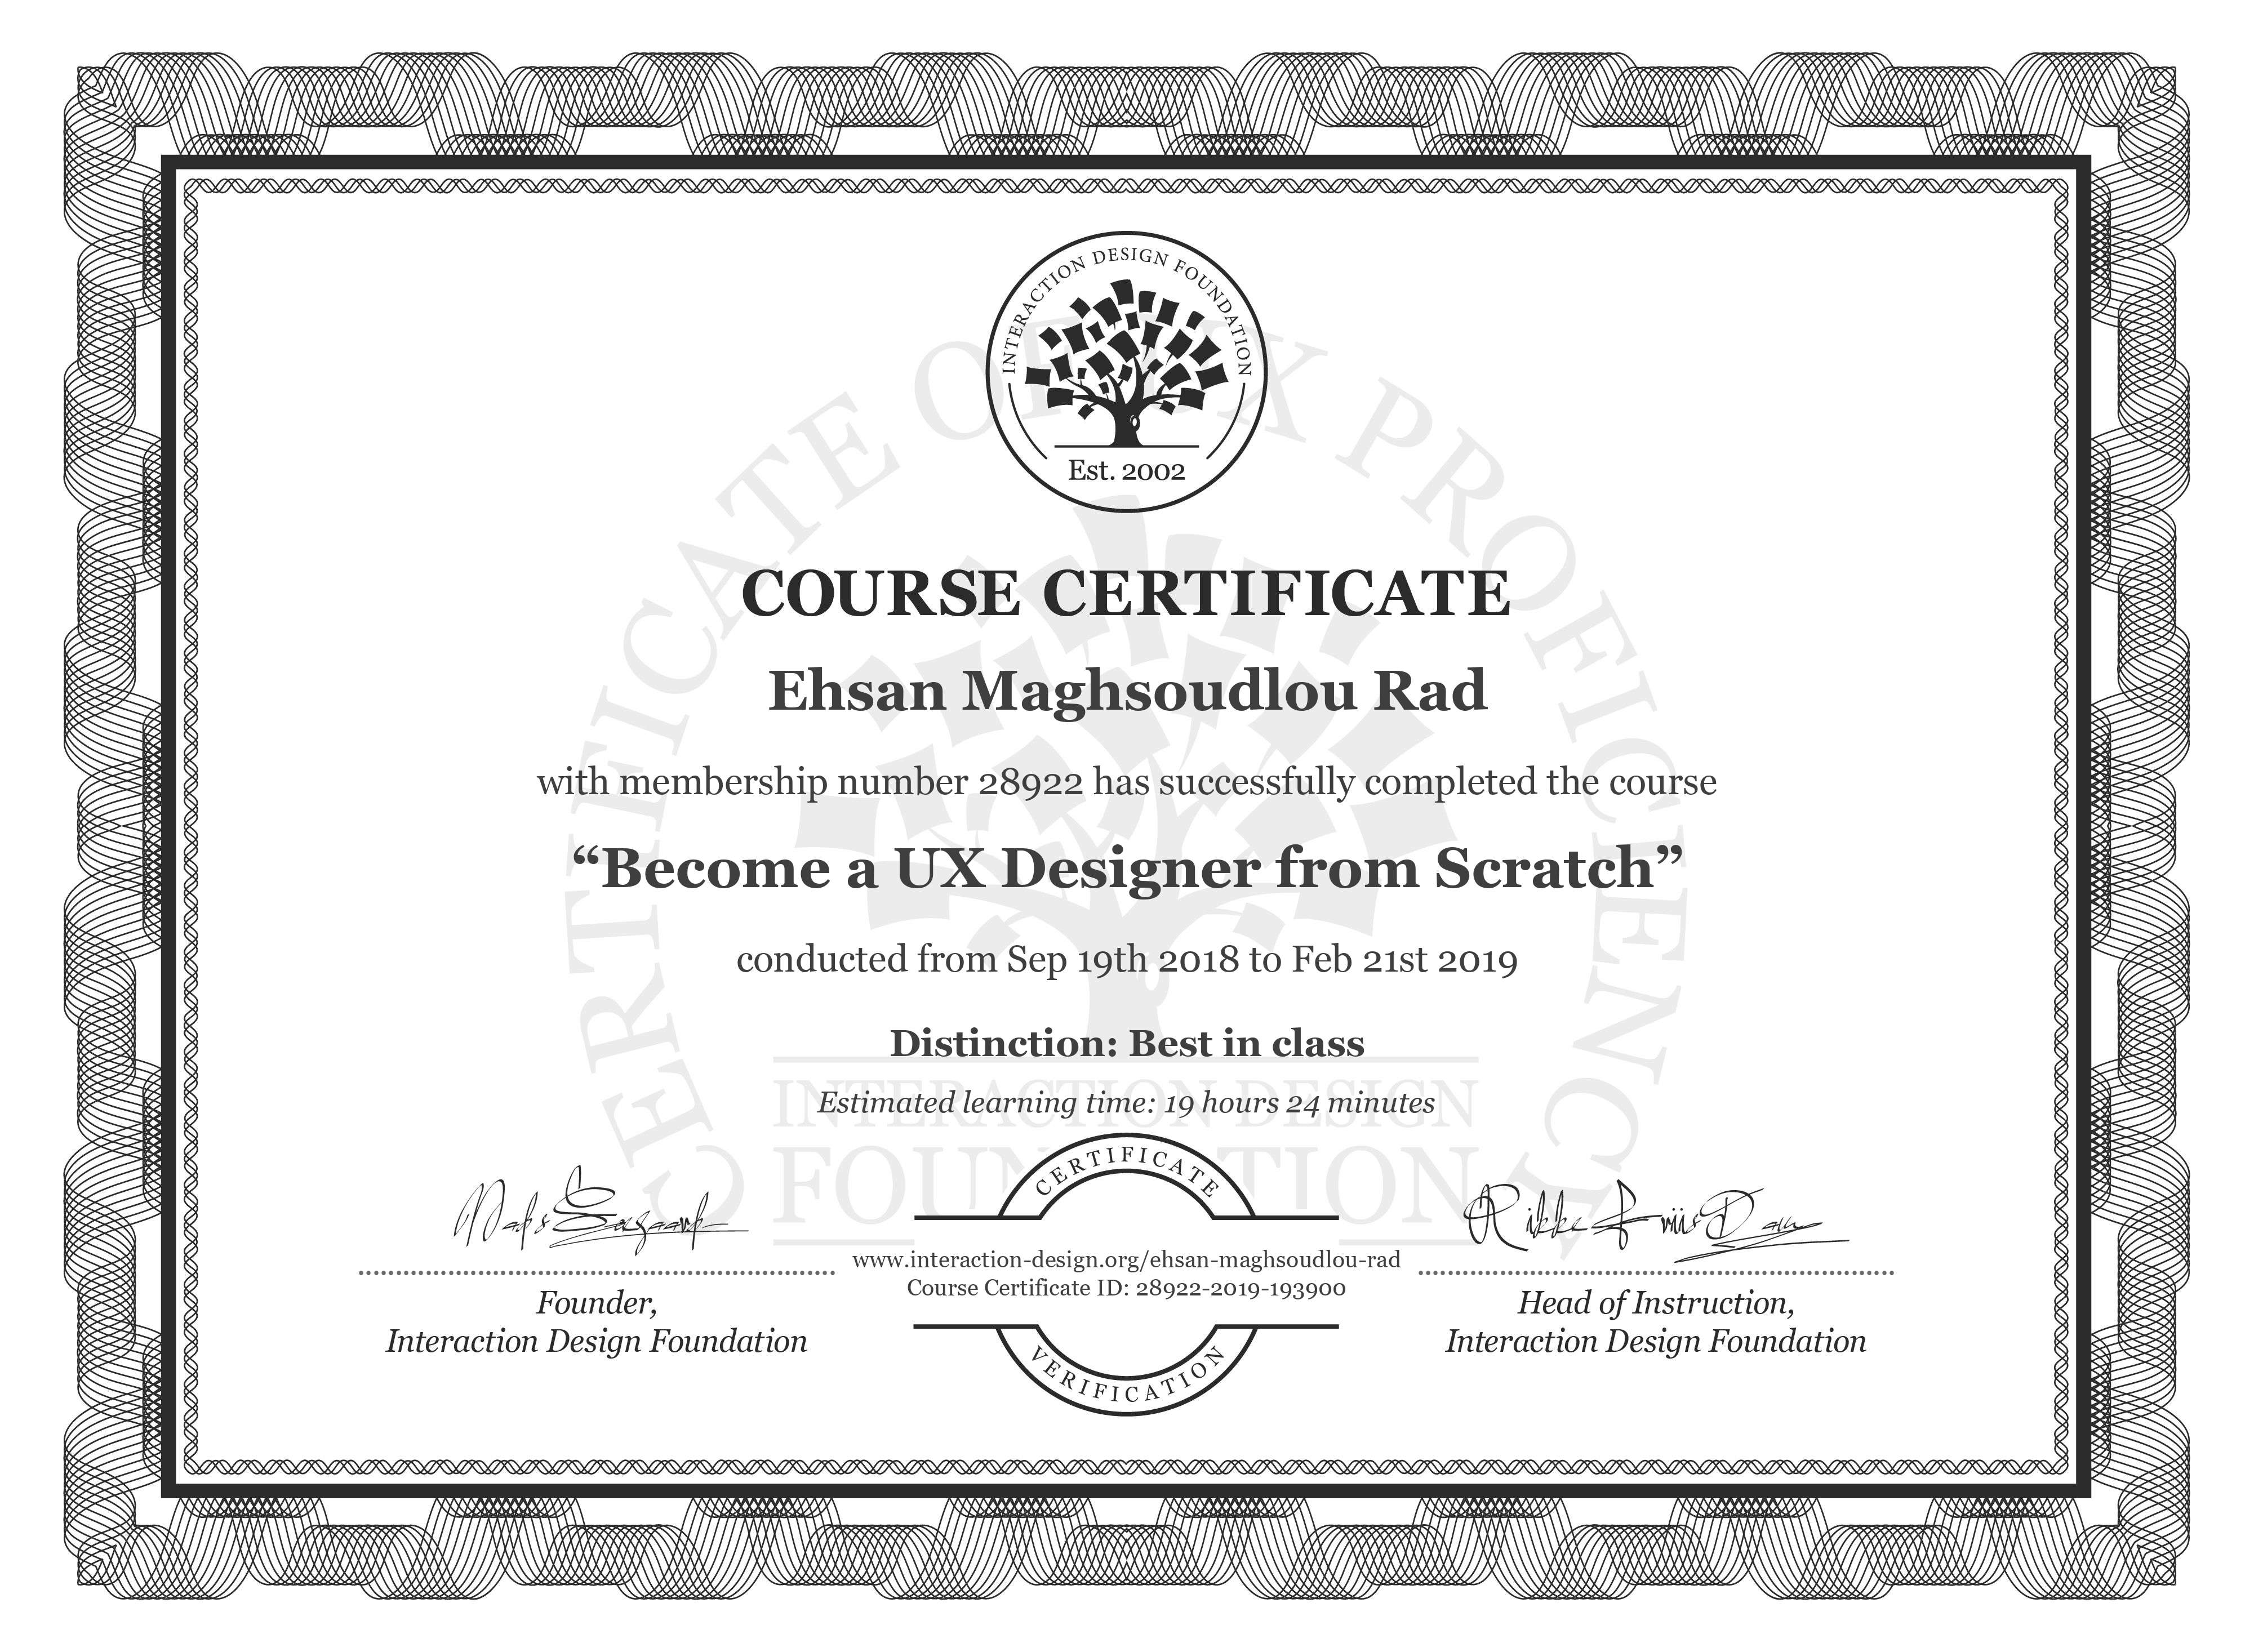 Ehsan Maghsoudlou Rad's Course Certificate: User Experience: The Beginner's Guide